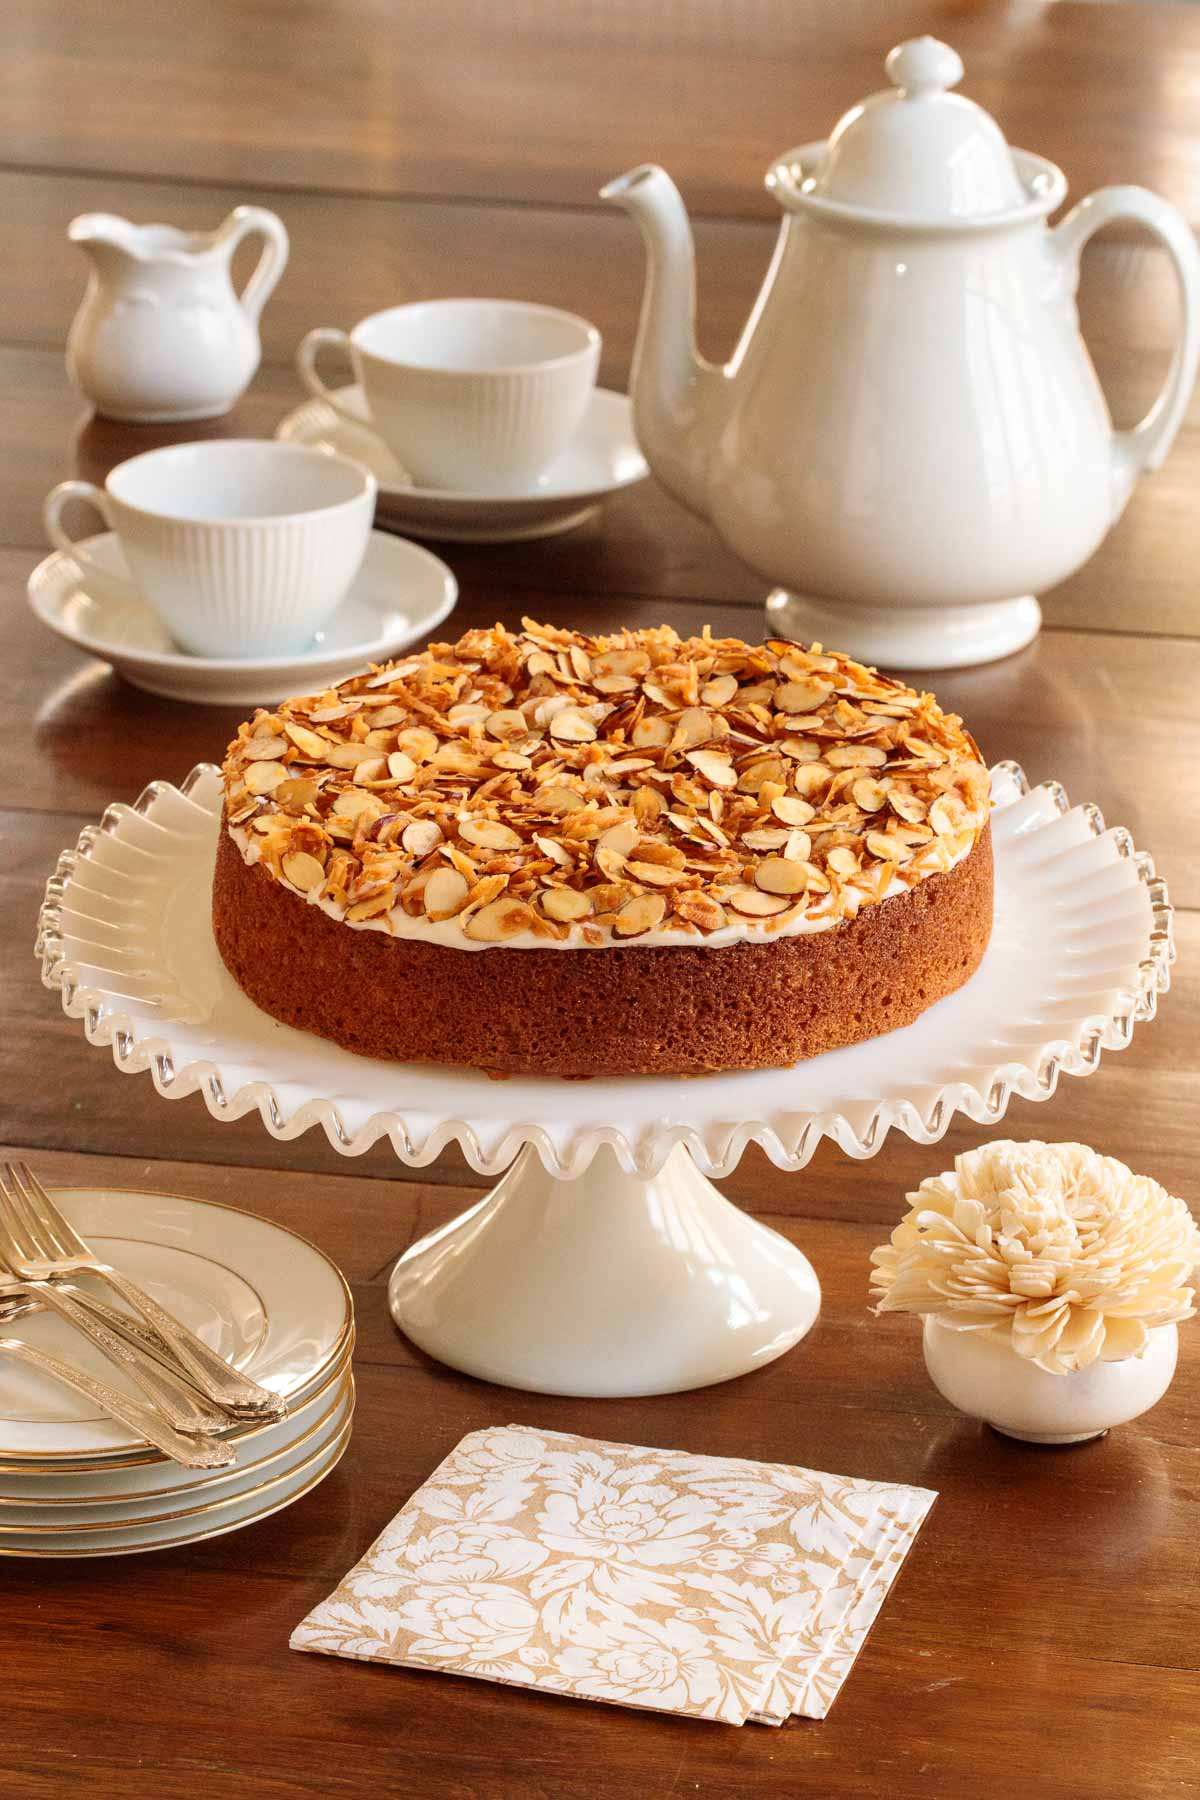 Photo of an Easy Buttermilk Butter Crunch Cake on a white glass pedestal stand surrounded by a tea set and serving items.